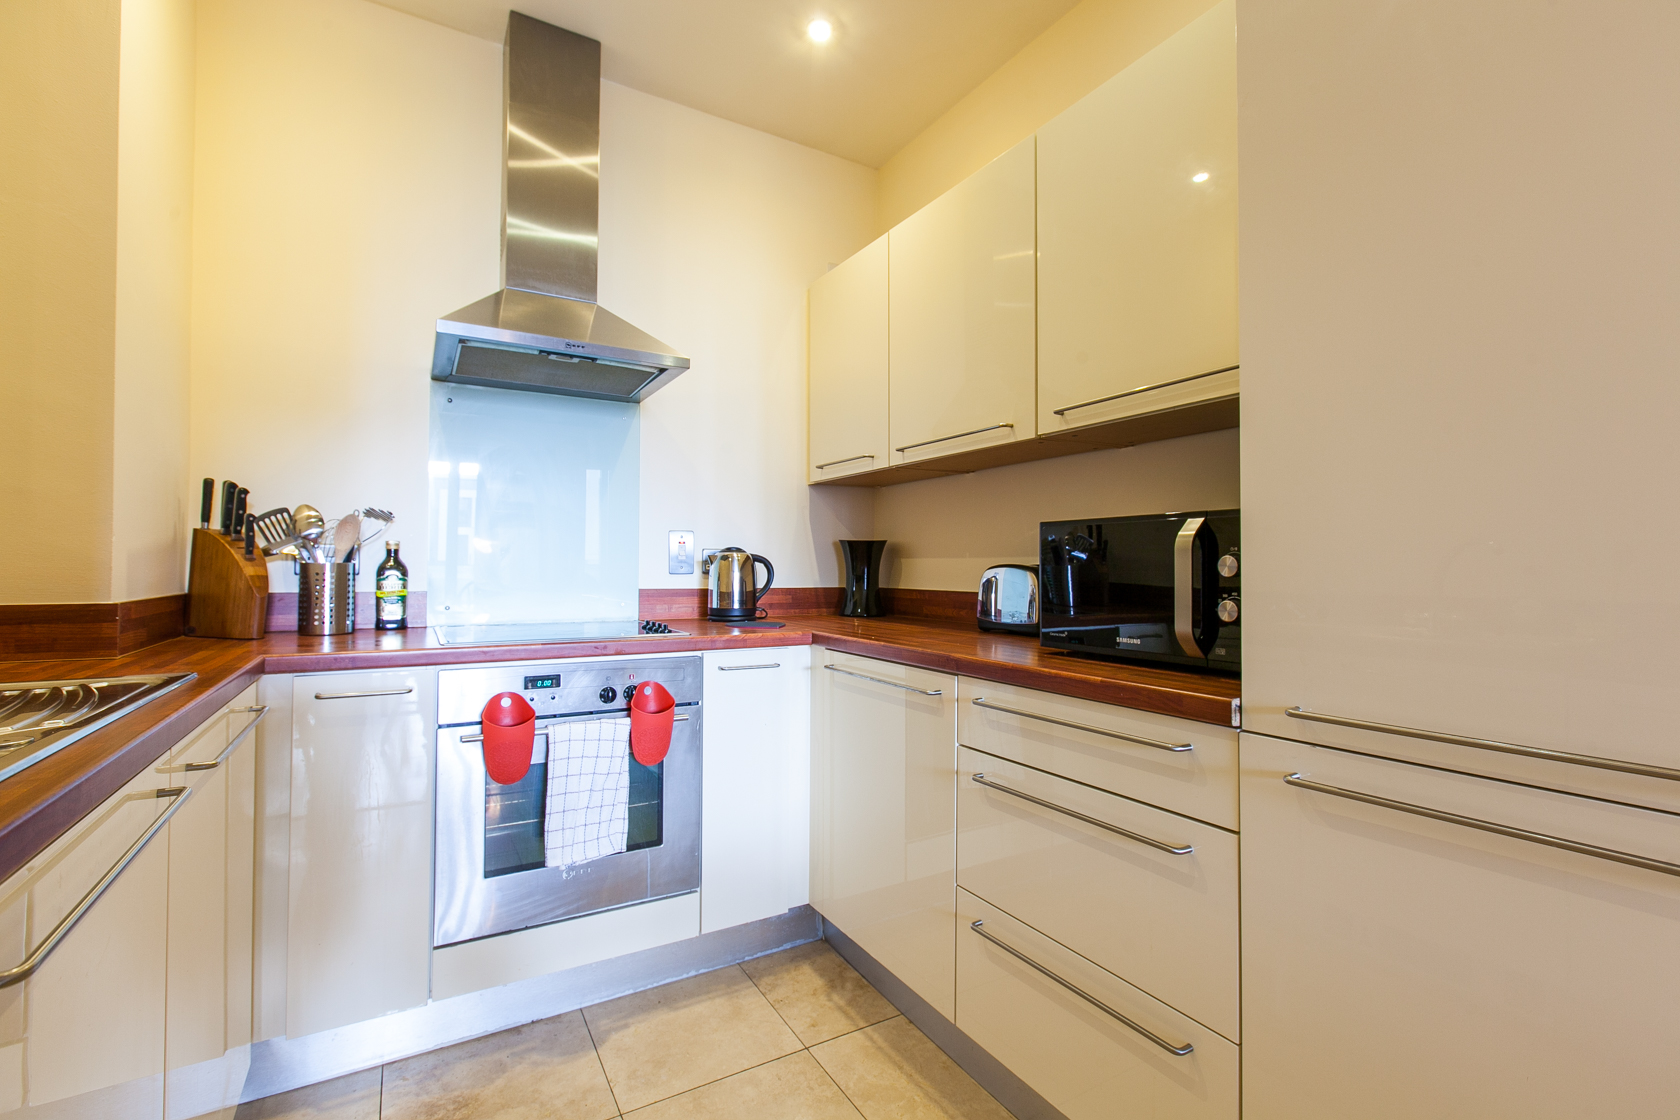 Kitchen at The Forum Sandyford Apartment, Sandyford, Dublin - Citybase Apartments